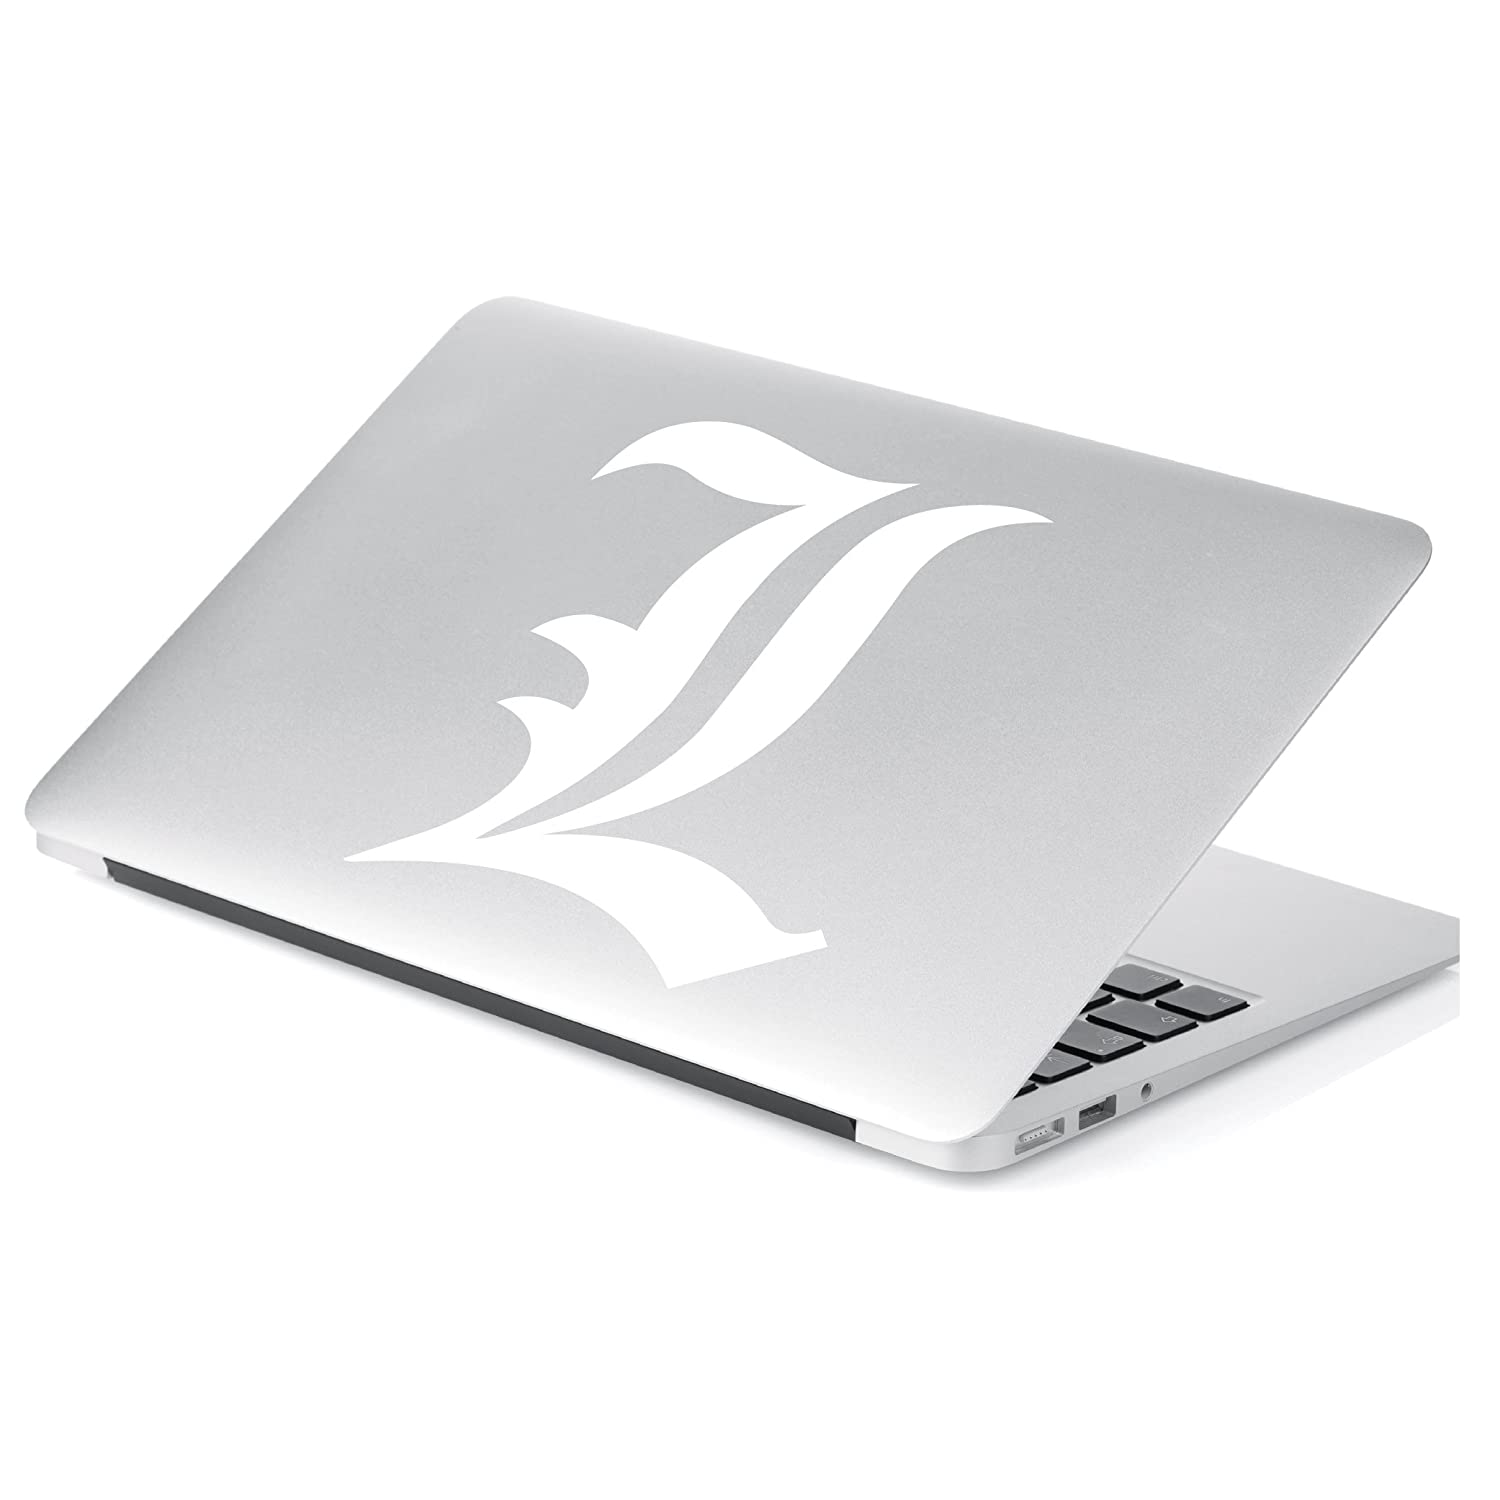 # 585 Yoonek Graphics Death Note L Anime Decal Sticker for Car Window 6 Laptop and More